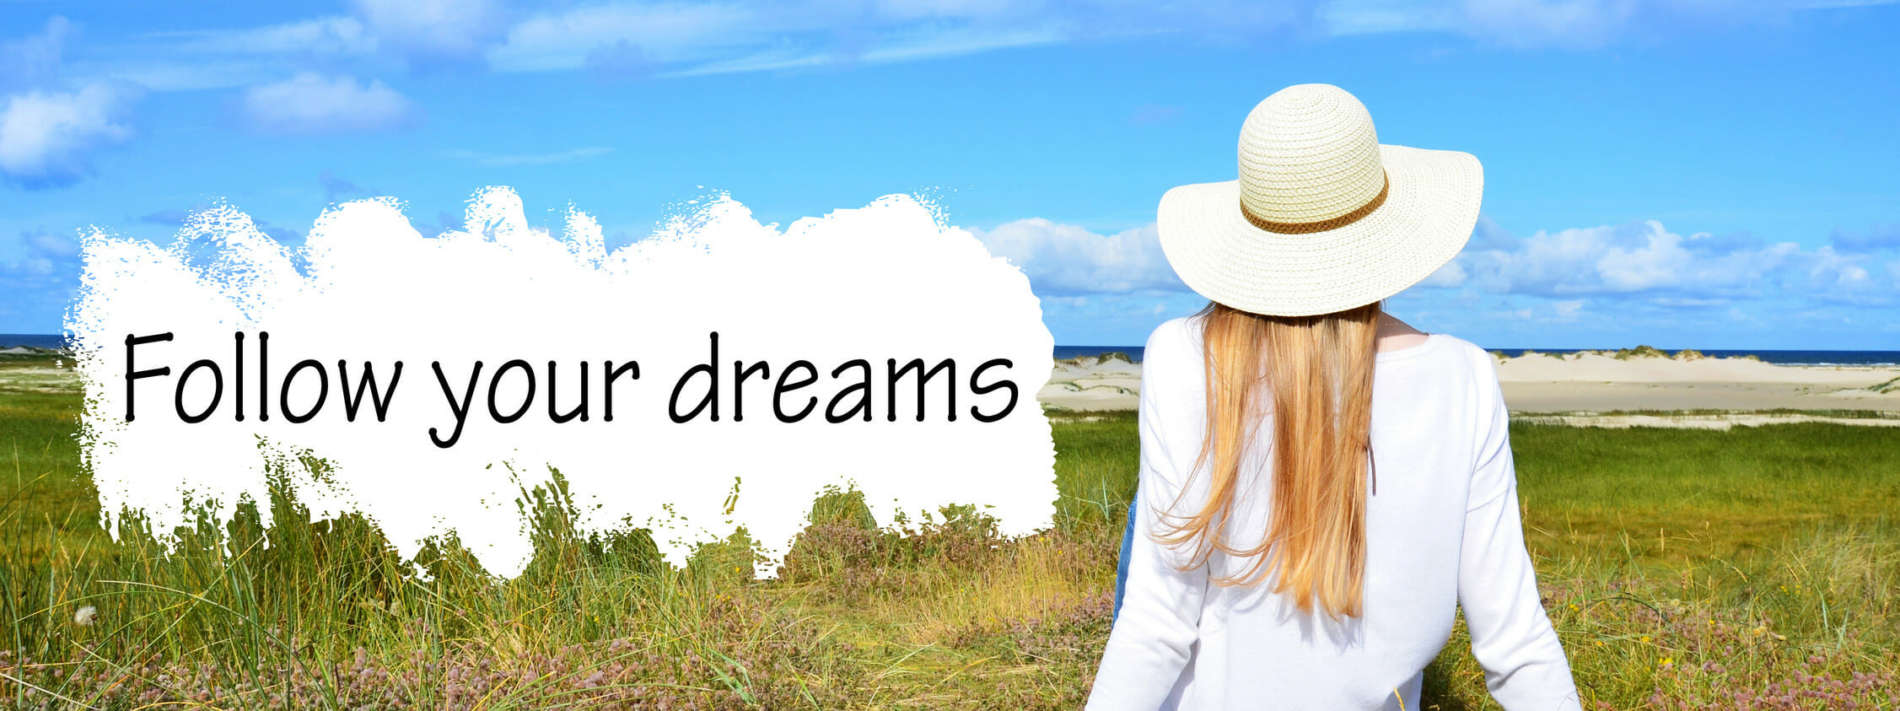 Follow your dreams - Hypnose Feldafing - Hypnosetherapie Feldafing - Hypnosetherapie Starnberg